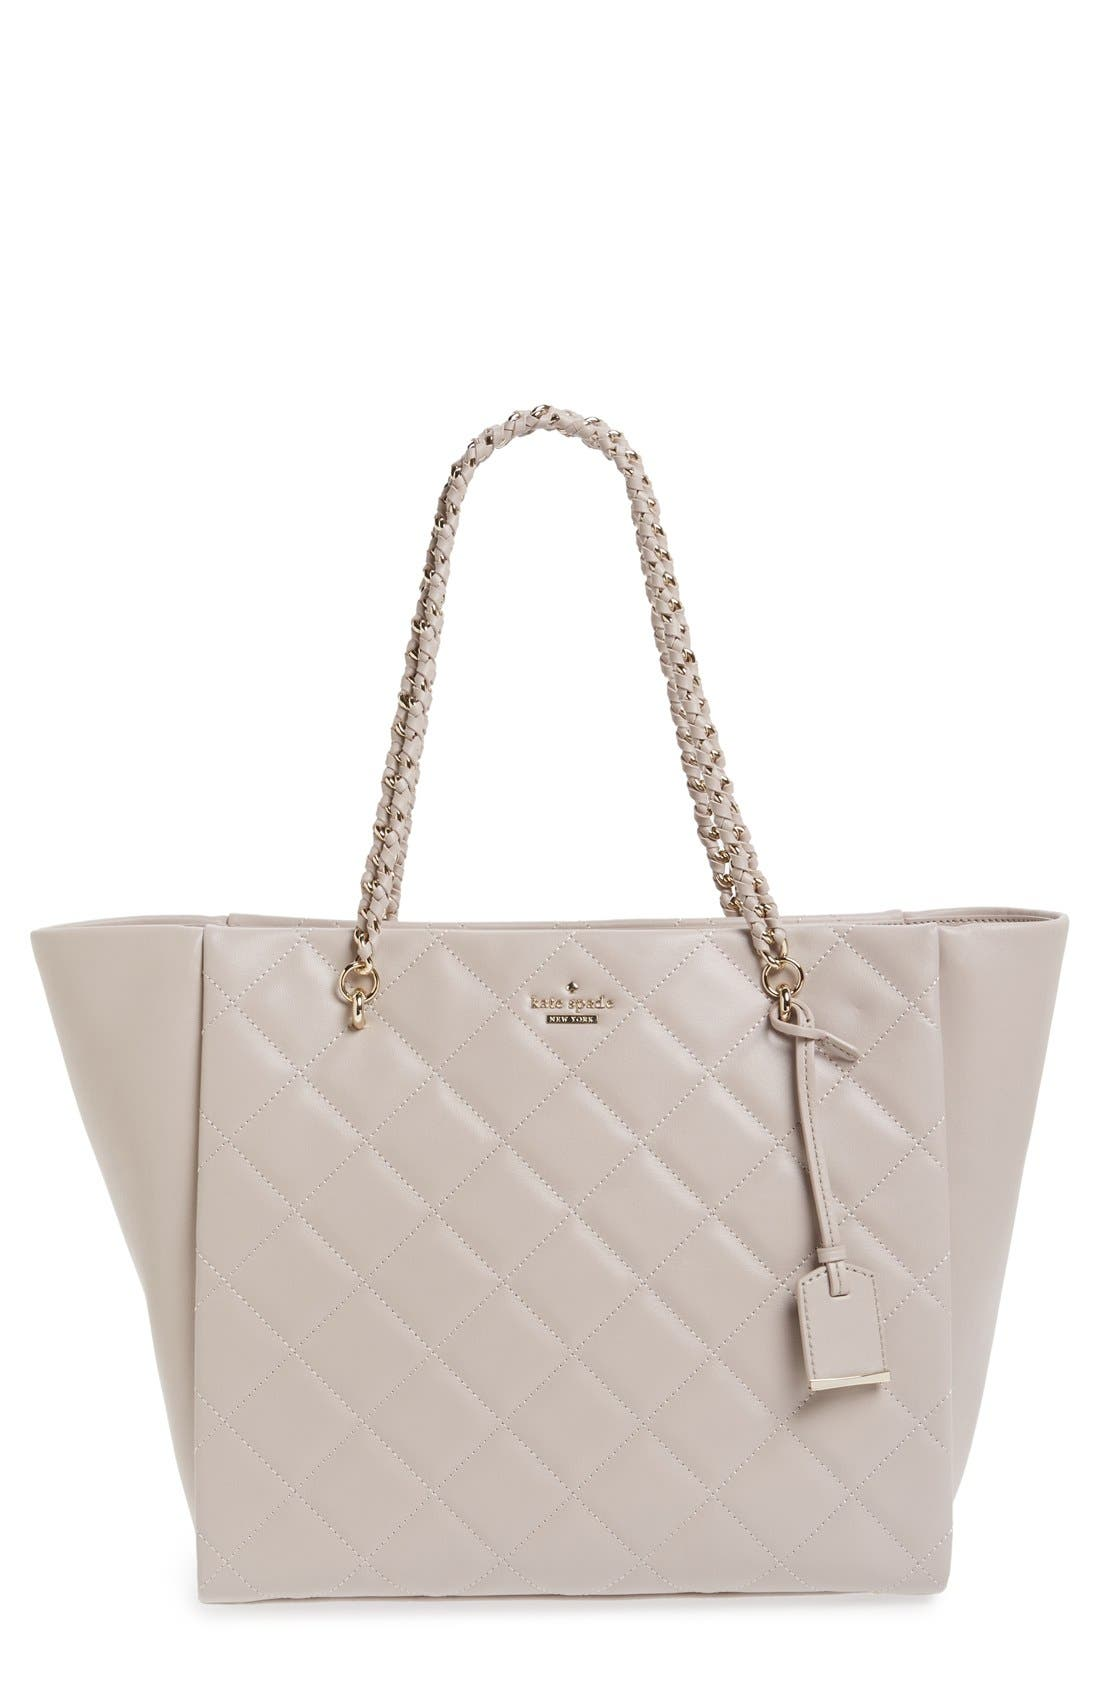 Main Image - kate spade new york 'emerson place - francelle' quilted leather tote